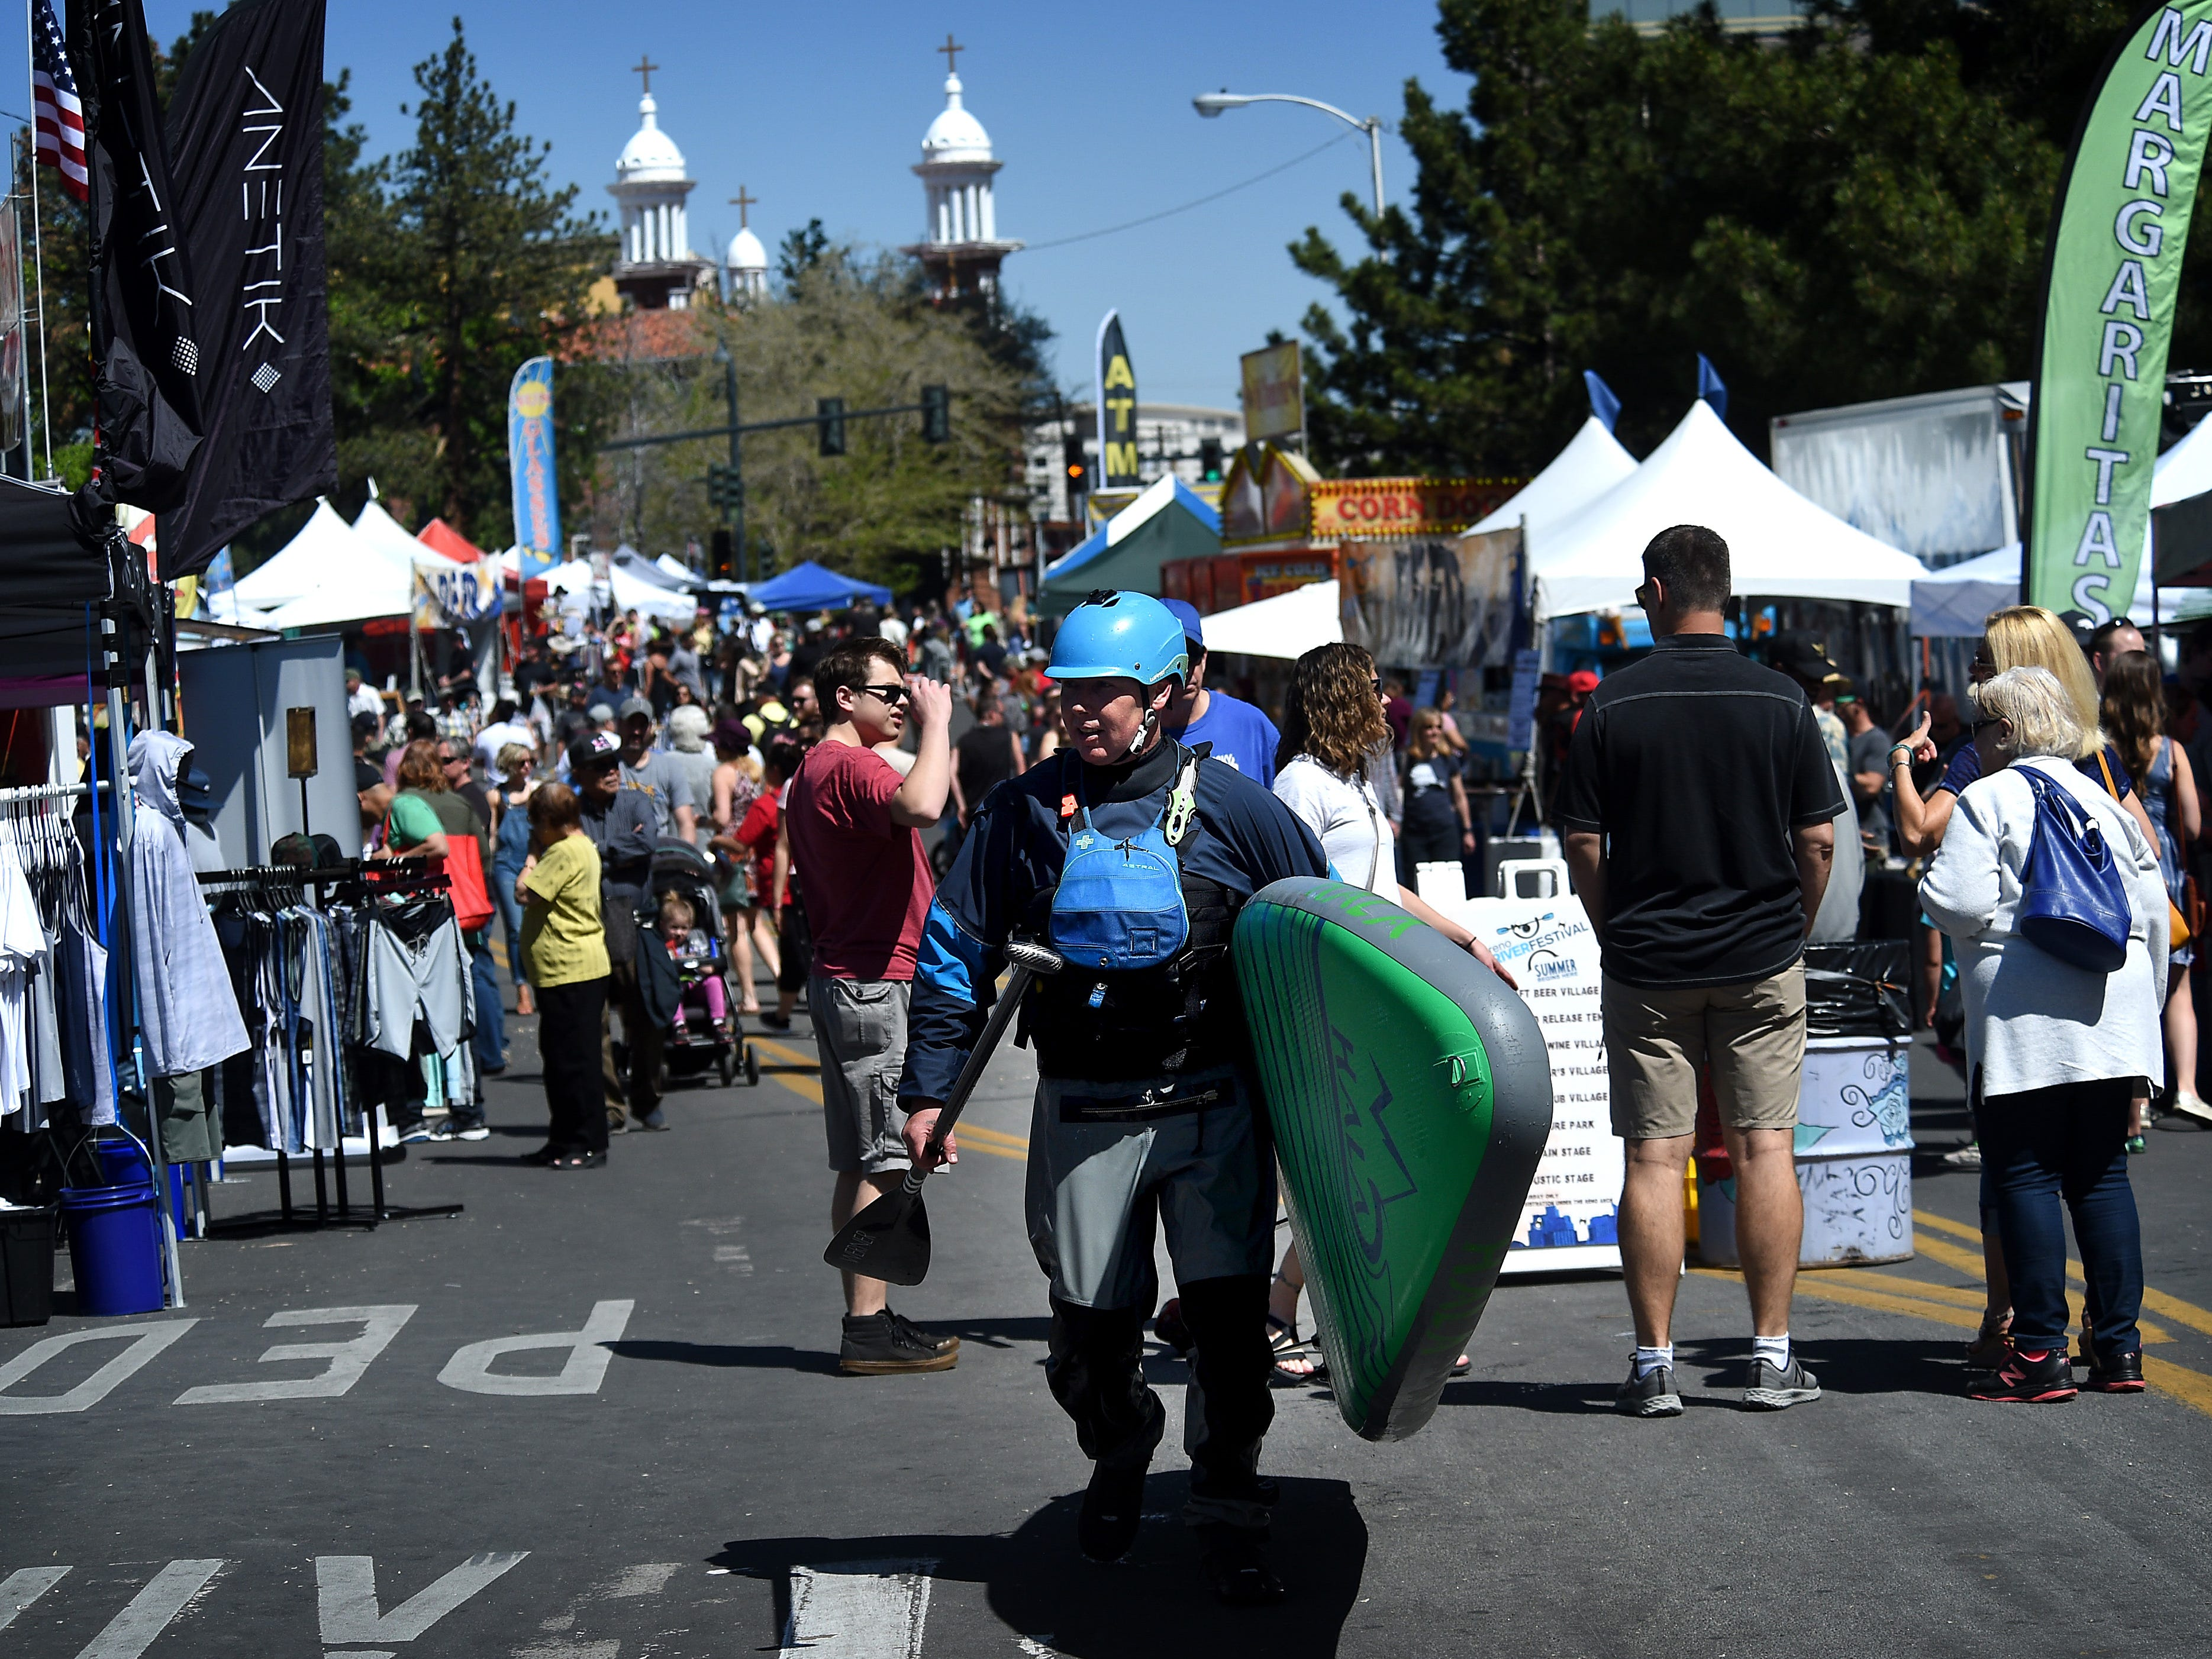 A stand up paddle boarder walks down Arlington Ave. during the Reno River Festival on the Truckee River in Wingfield Park on May 11, 2019.